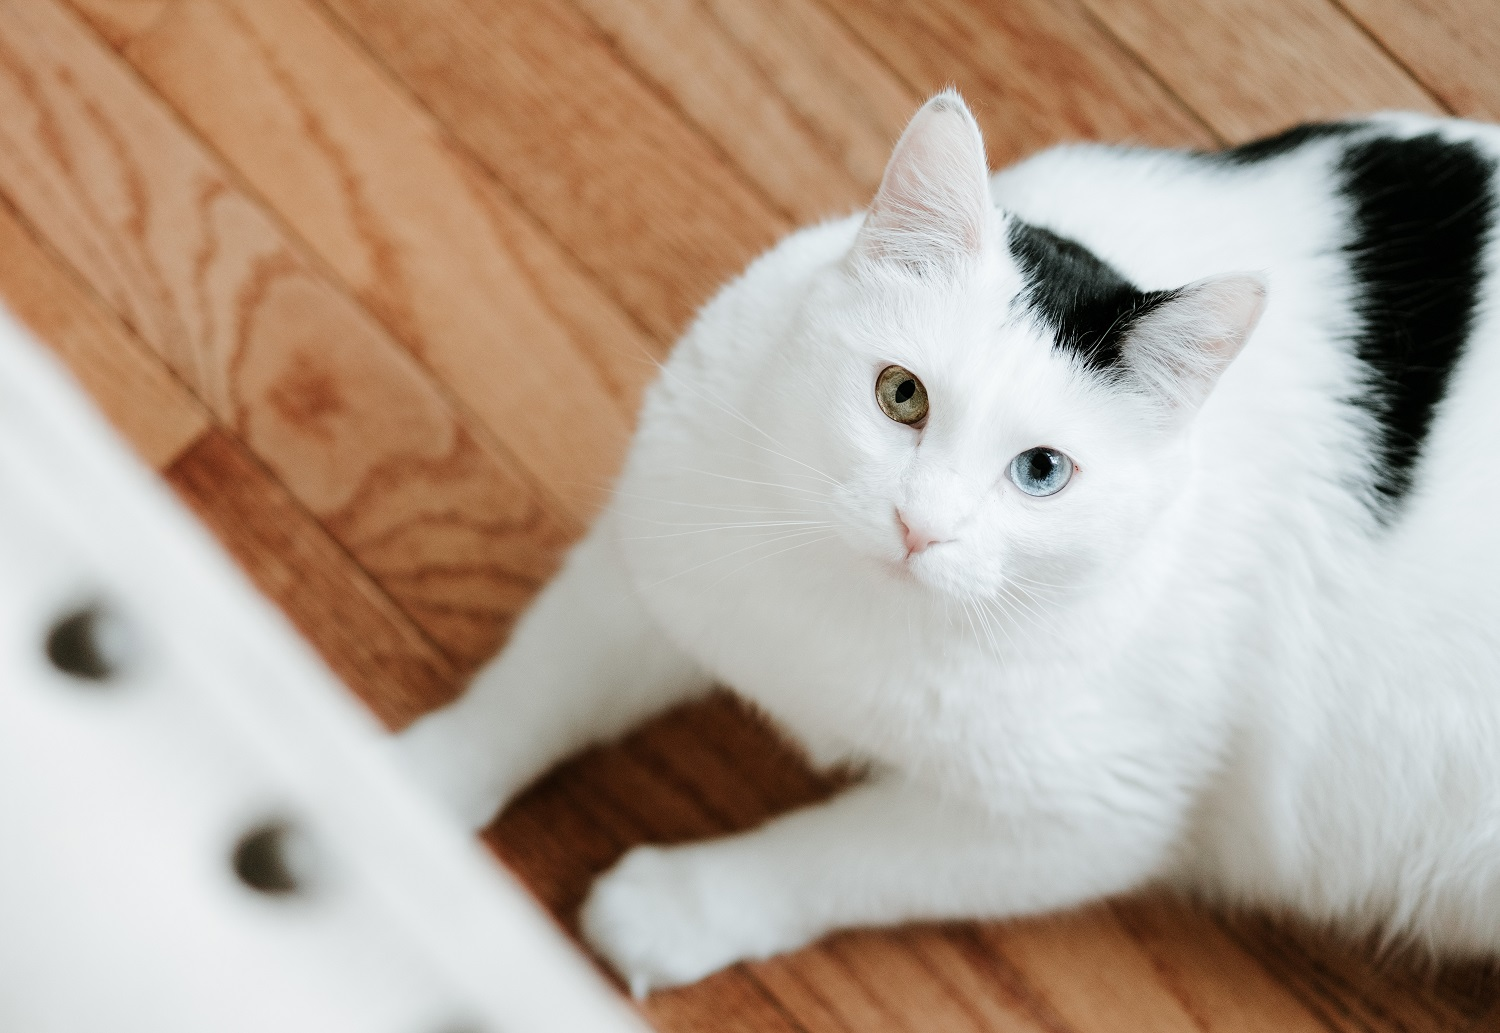 Odd Eyes in Cats (Heterochromia)